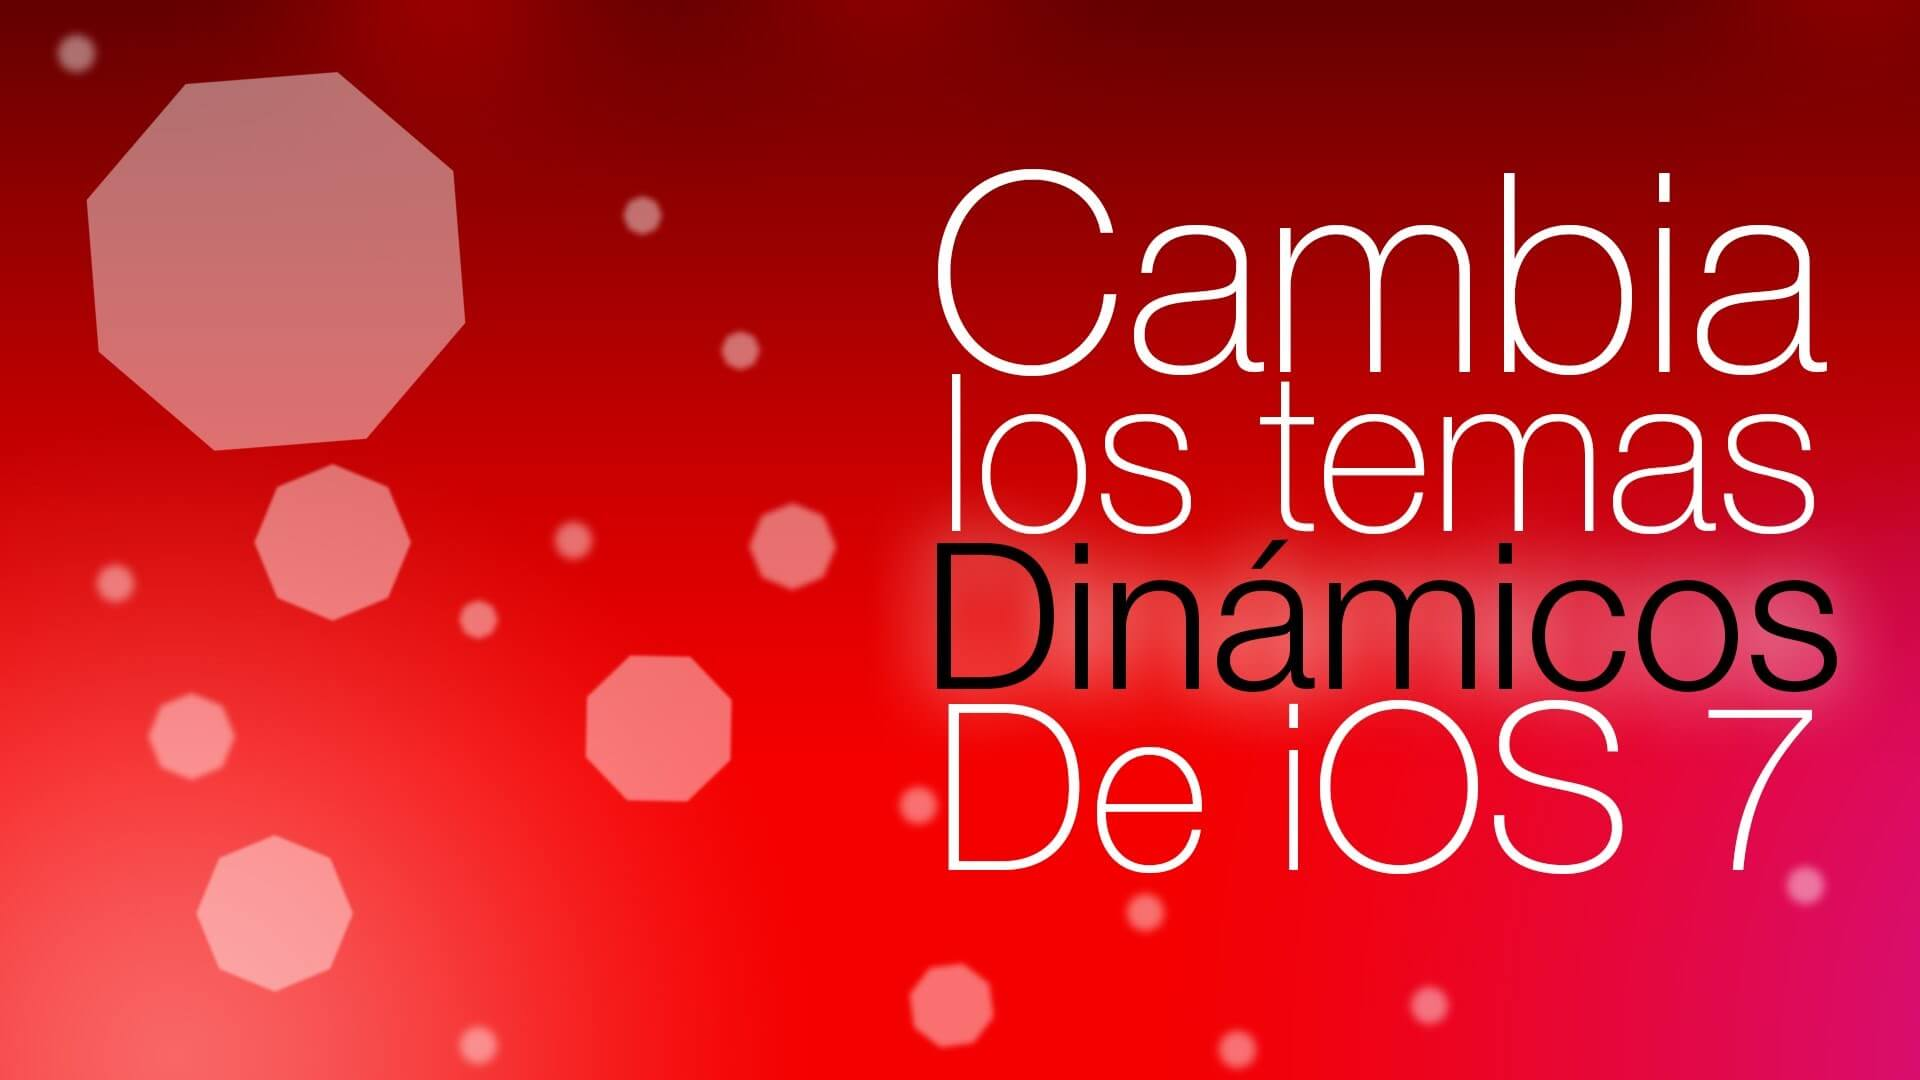 iDynamic modifica los temas dinámicos de iOS 7